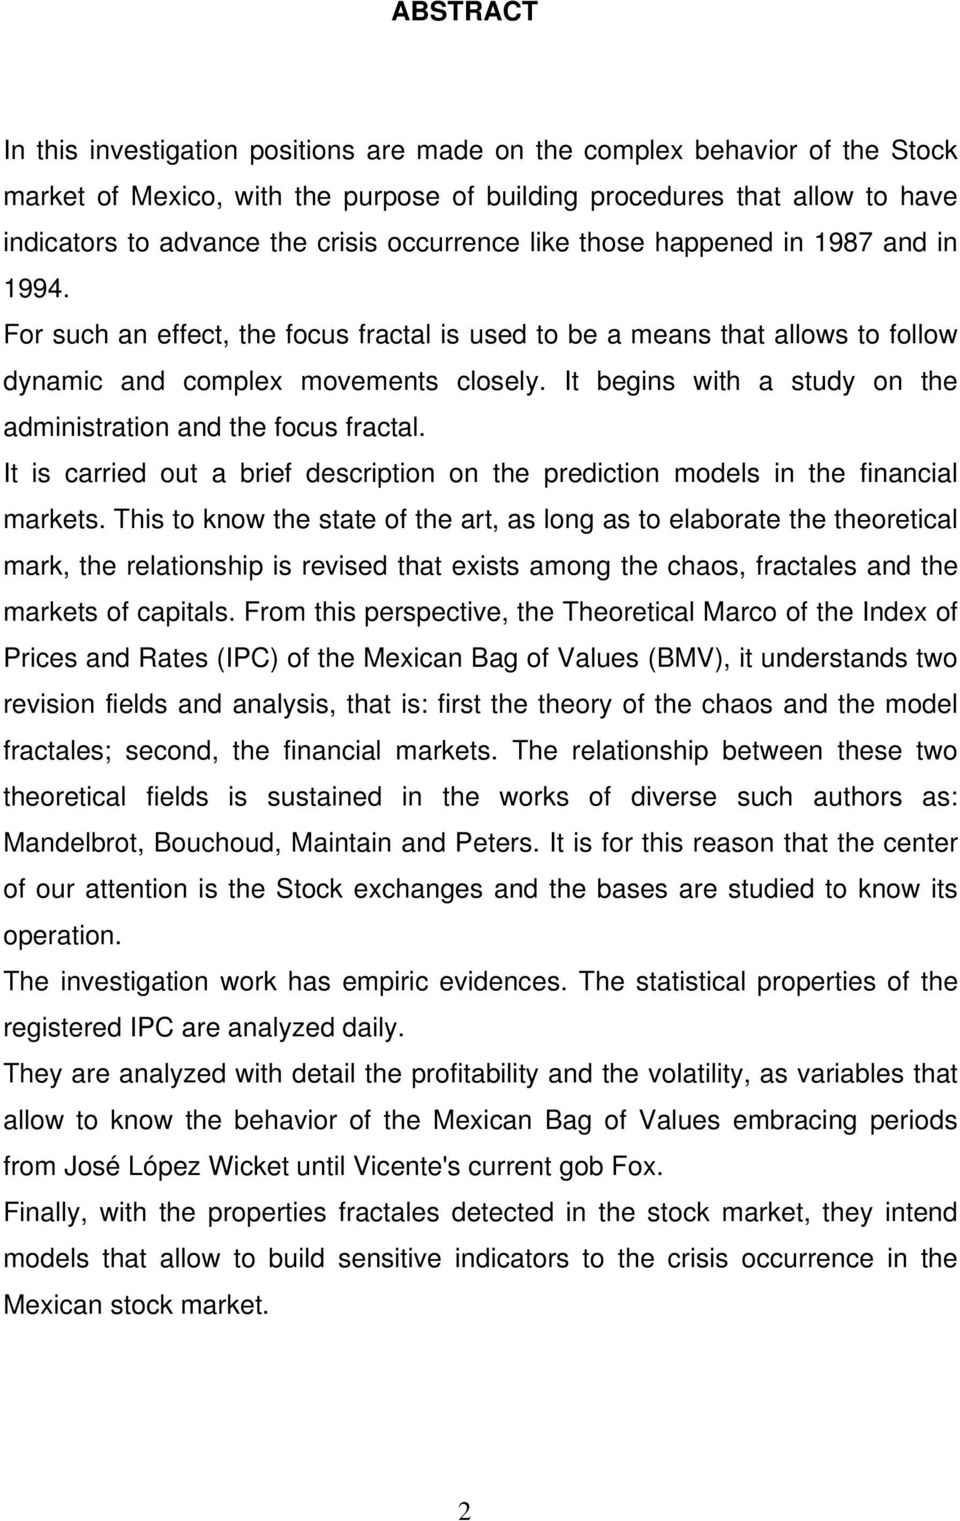 It begins with a study on the administration and the focus fractal. It is carried out a brief description on the prediction models in the financial markets.